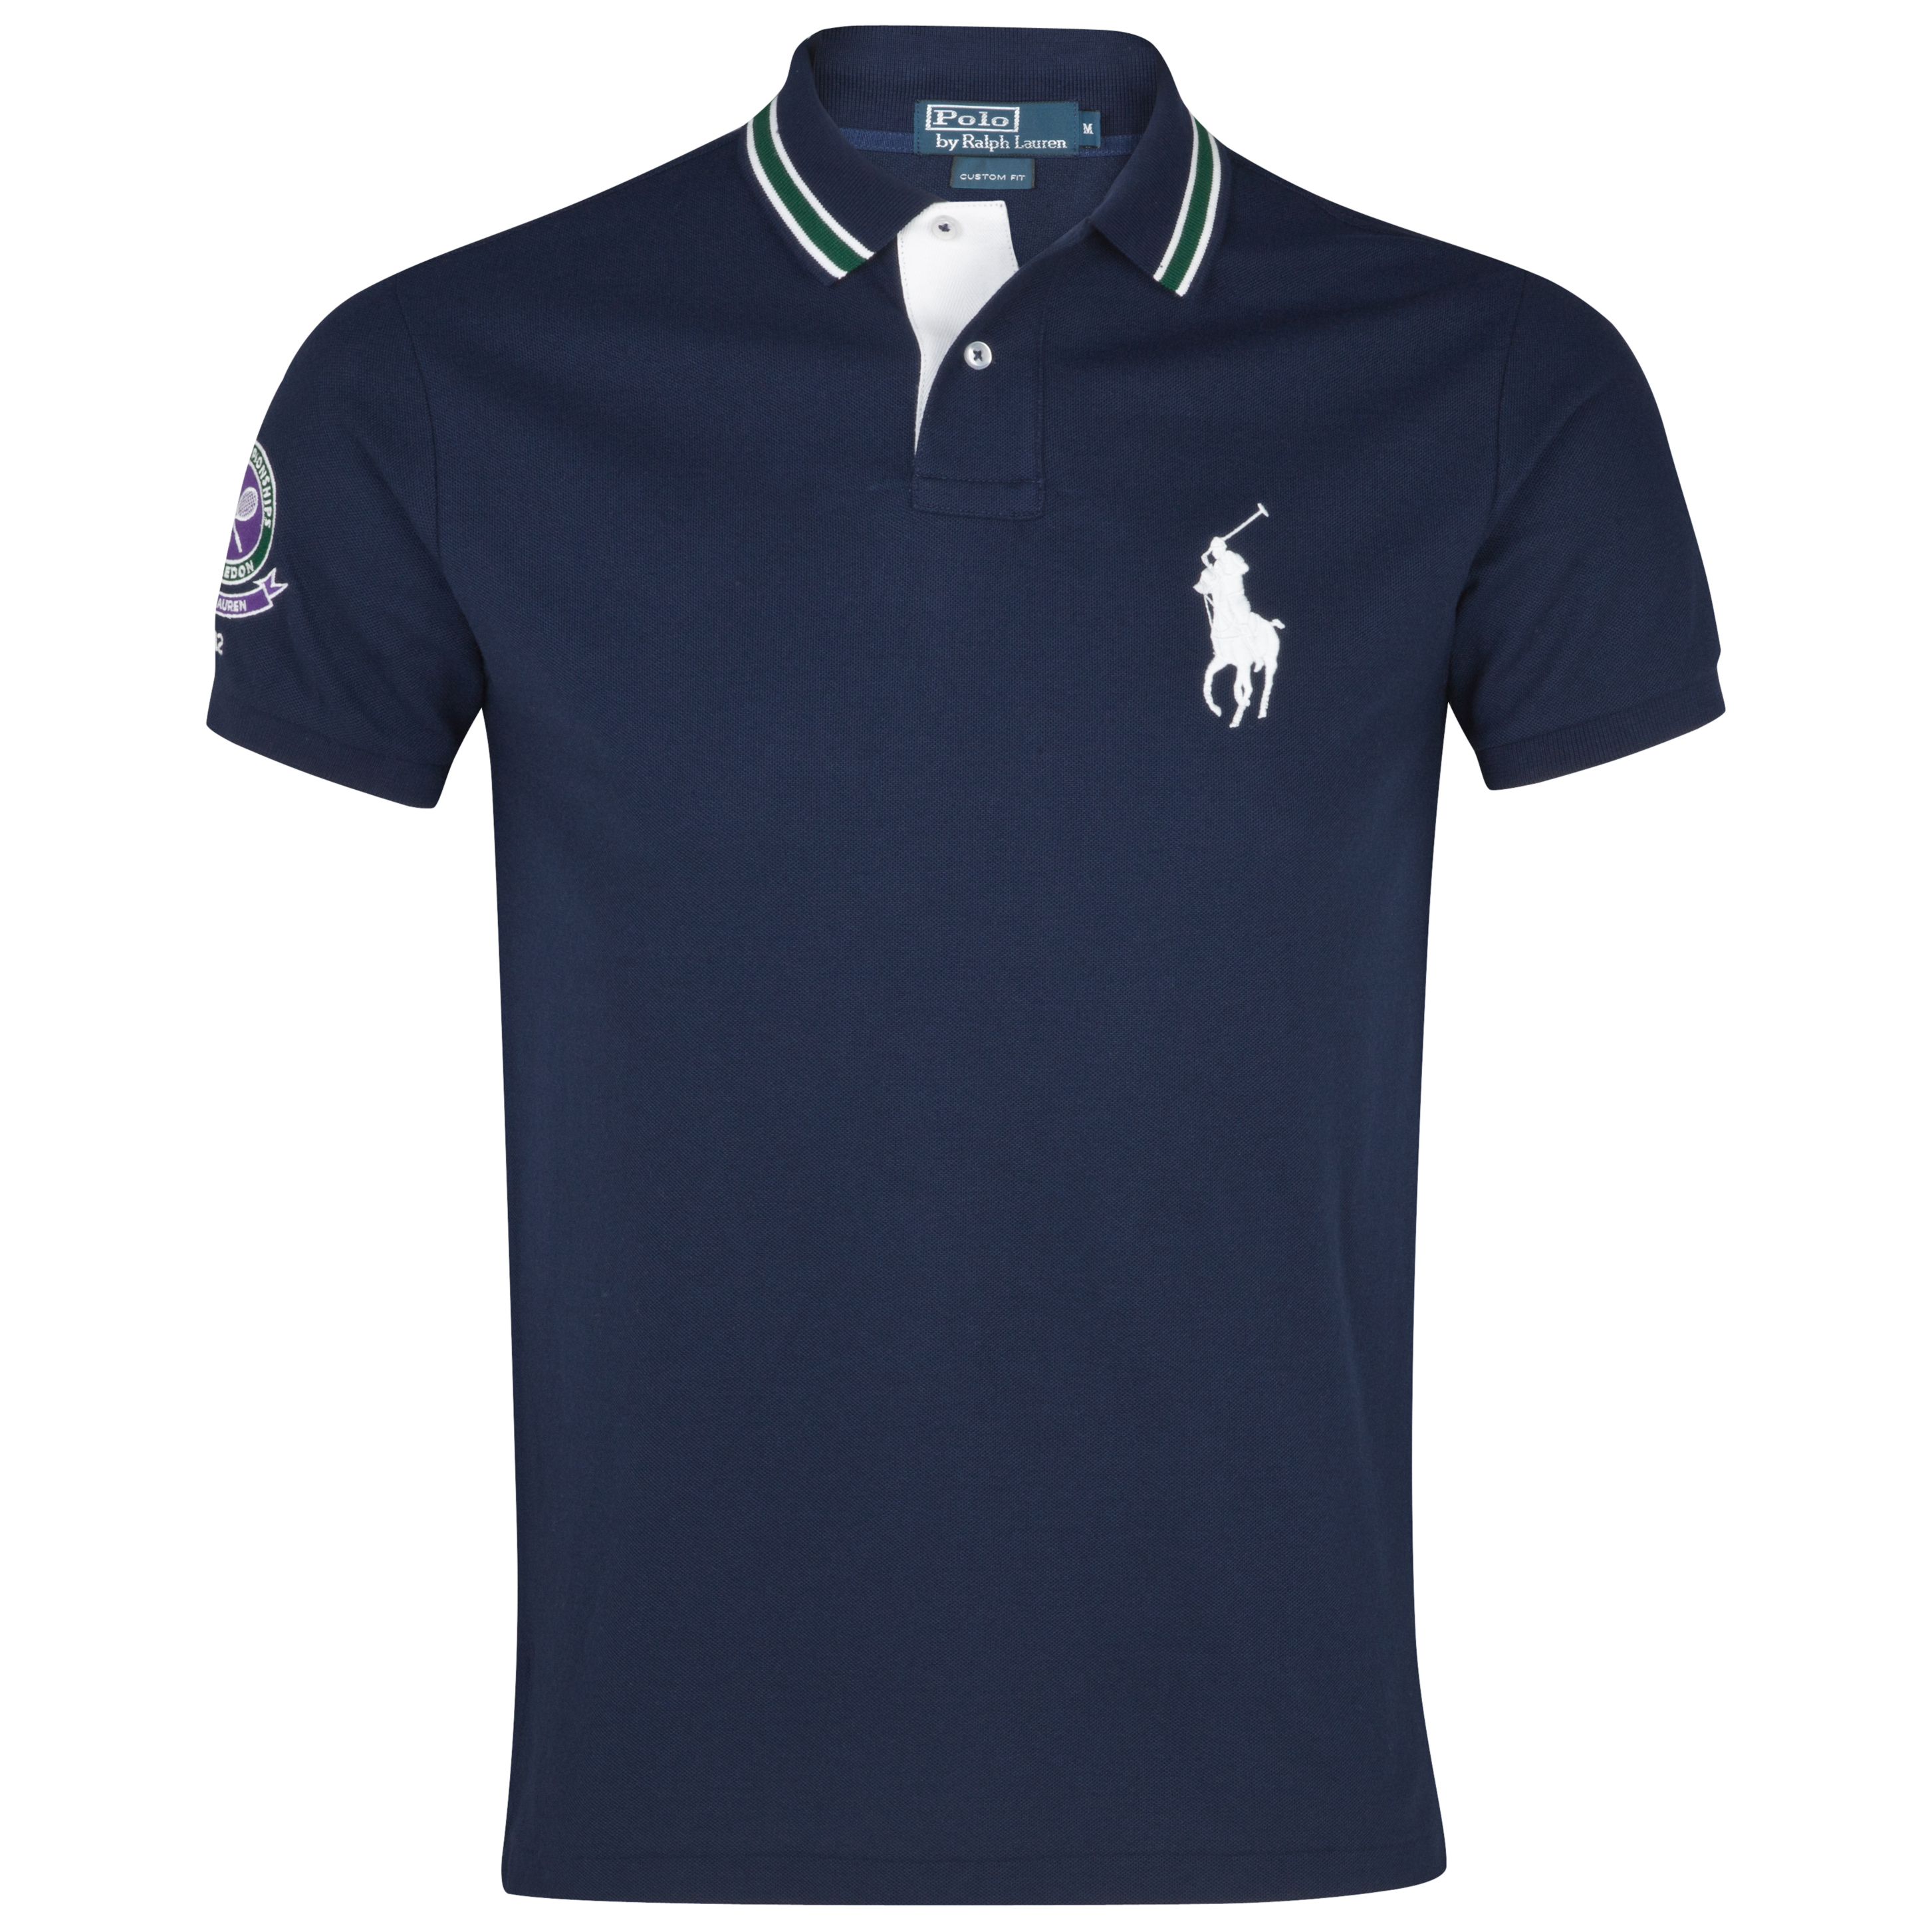 Polo Ralph Lauren Wimbledon Polo Shirt - French Navy